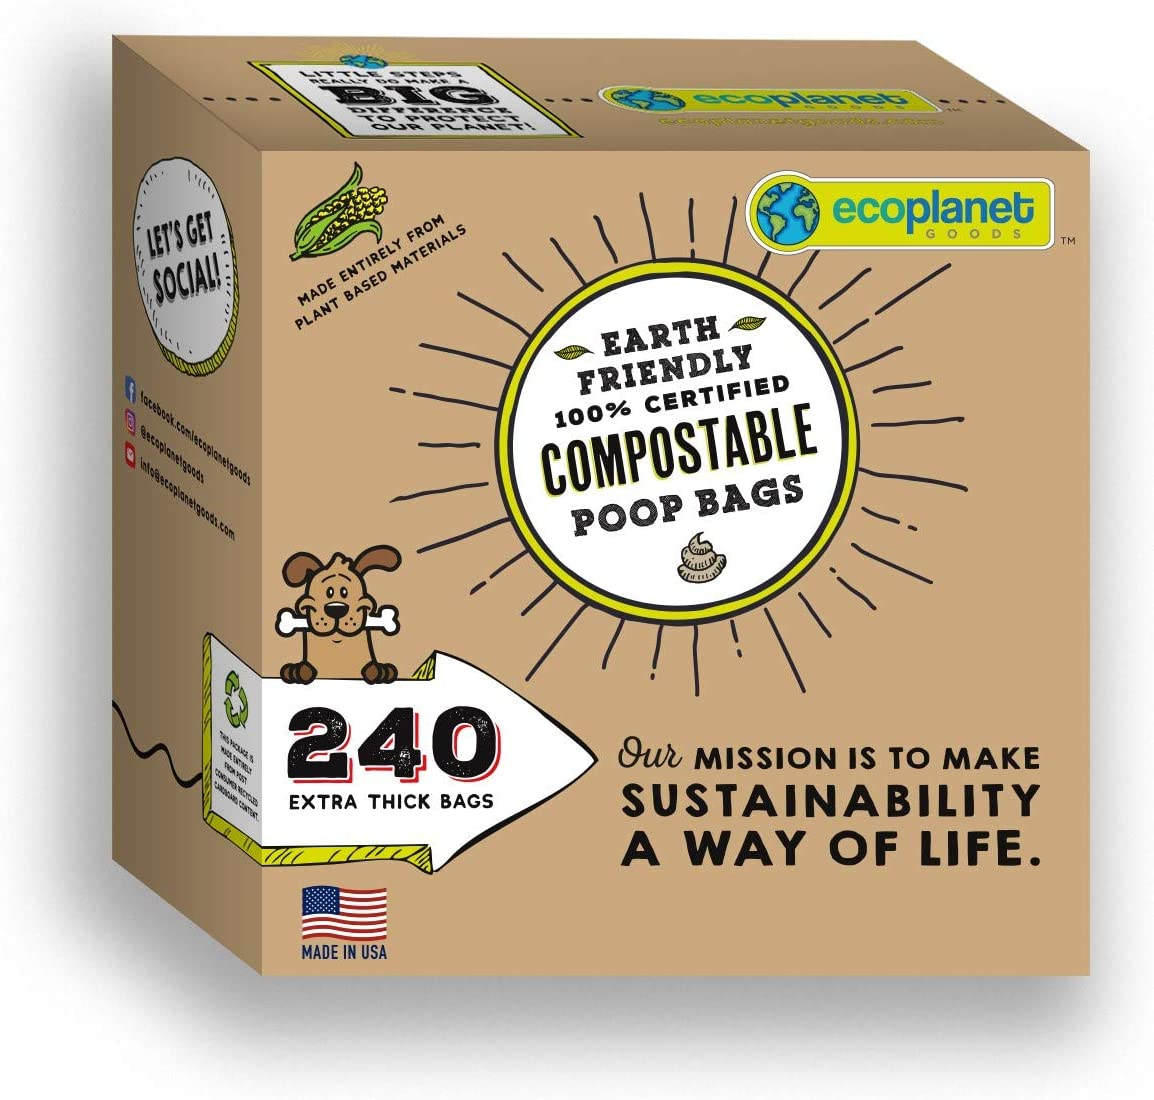 Compostable Poop Bags Full Decomposition Within Only 90 Days Fur a Petter World 100/% Eco-Friendly Biodegradable Made of Cornstarch Thick /& Easy to Open Leak Proof